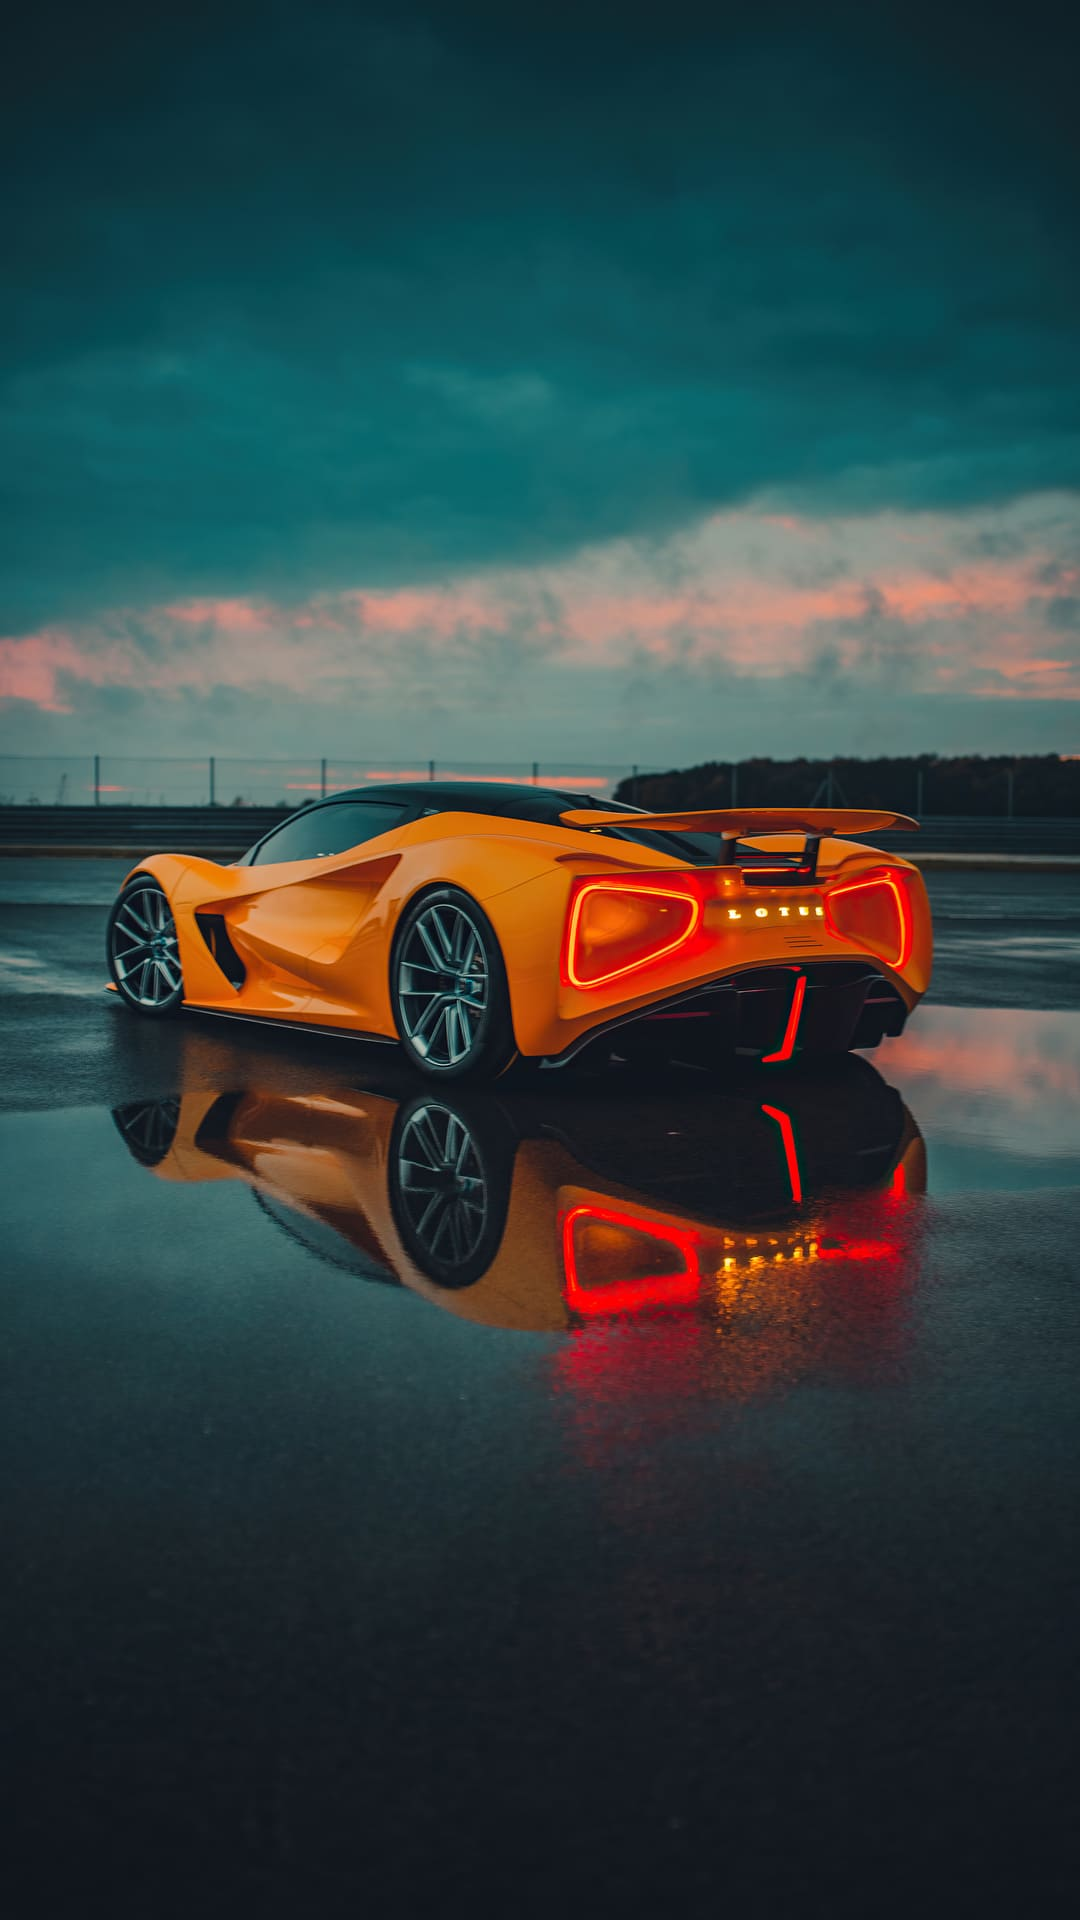 Whether you cover an entire room or a single wall, wallpaper will update your space and tie your home's look. Cool Cars Wallpapers Getty Wallpapers